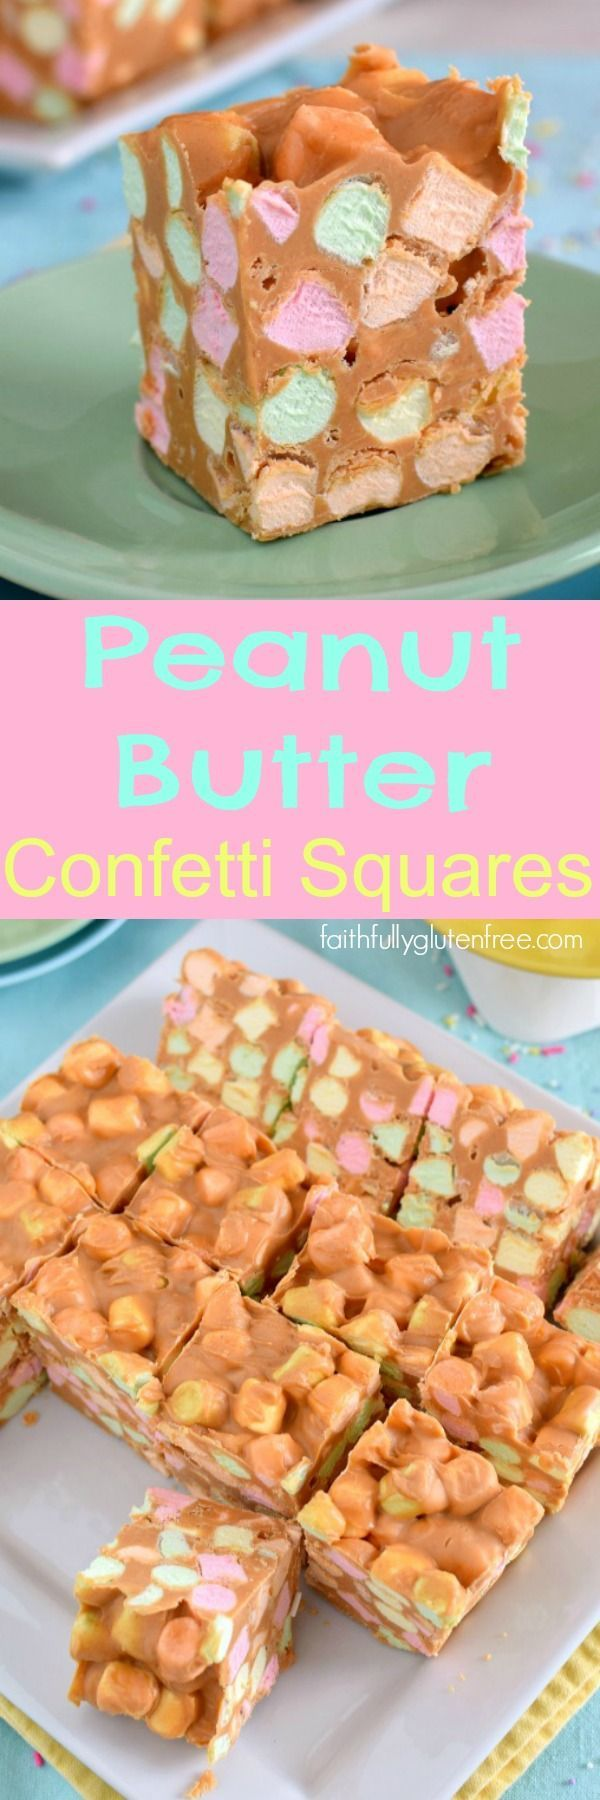 431 best gluten free recipes from faithfully gluten free images on my grandma used to make these peanut butter confetti squares every easter what a treat negle